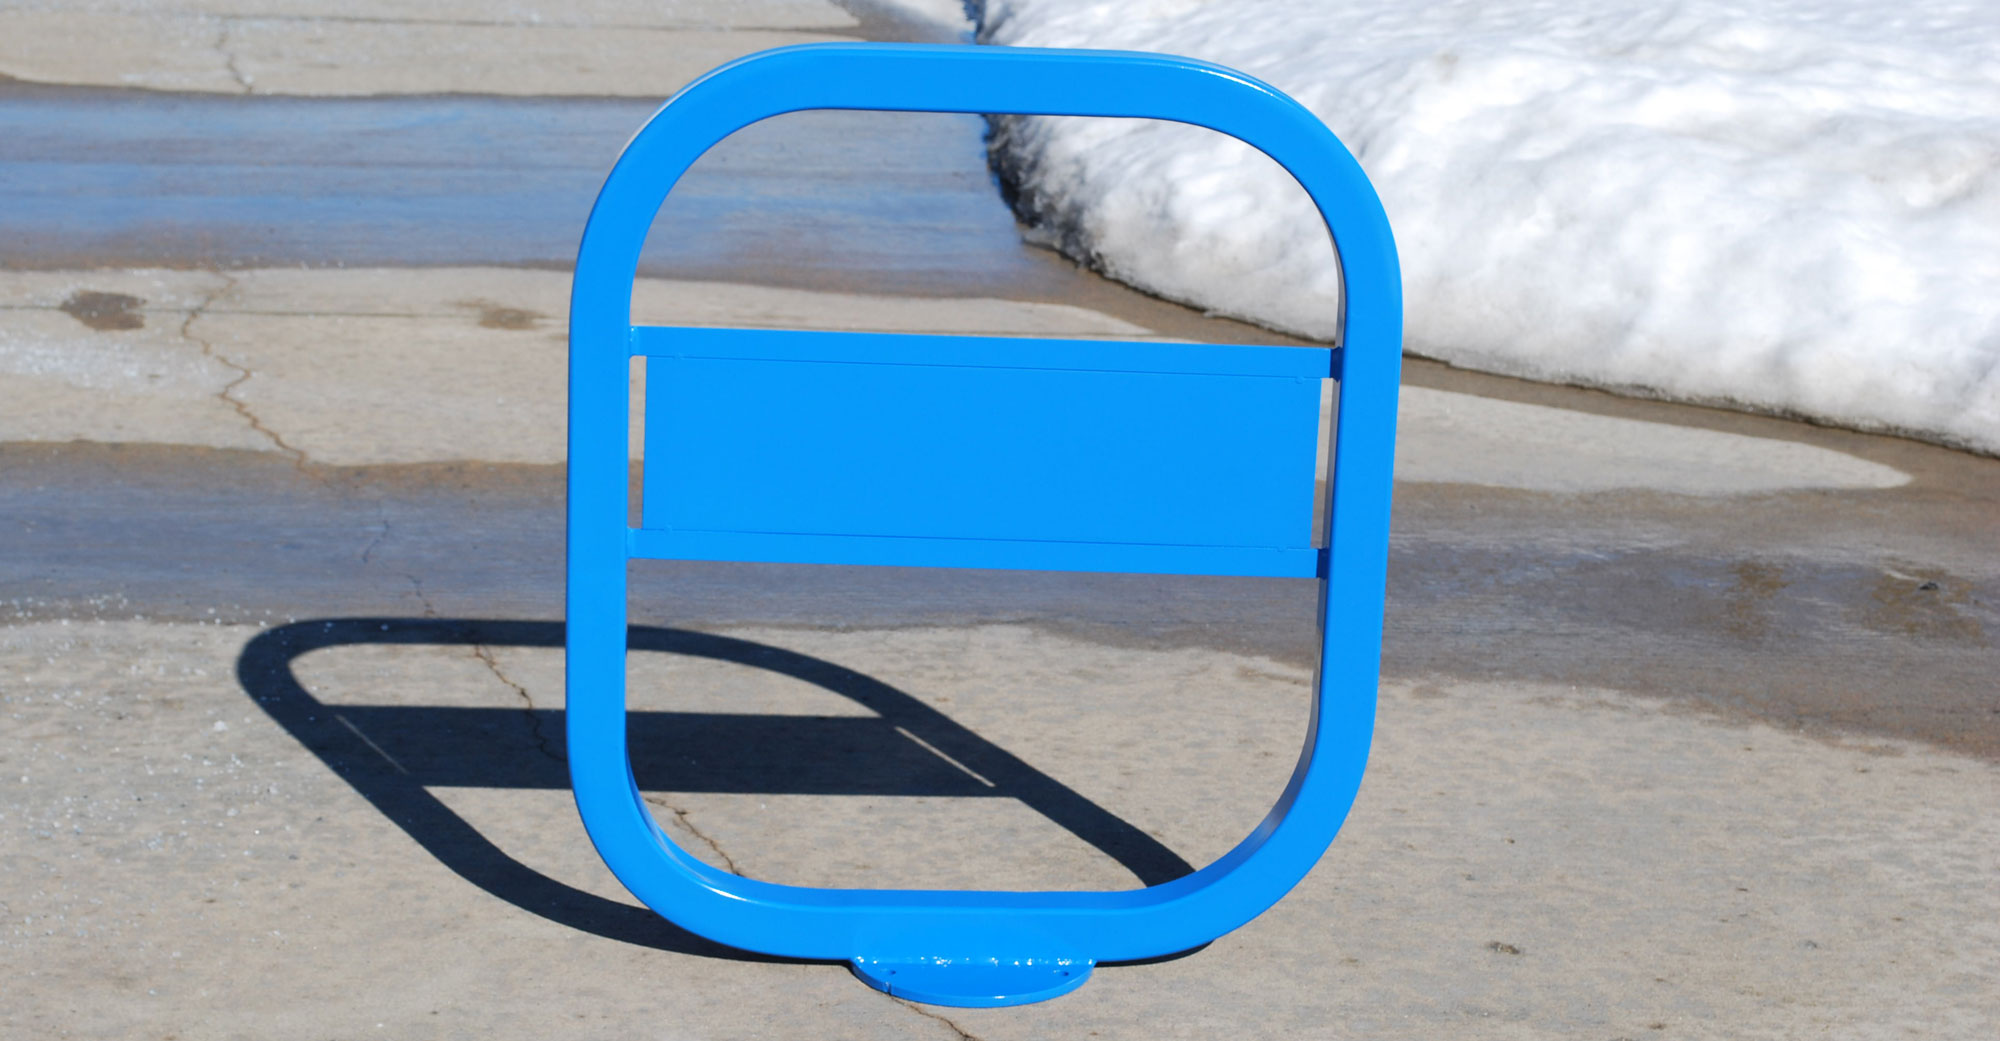 Custom Bike Rack Social Bikes Bike Sharing